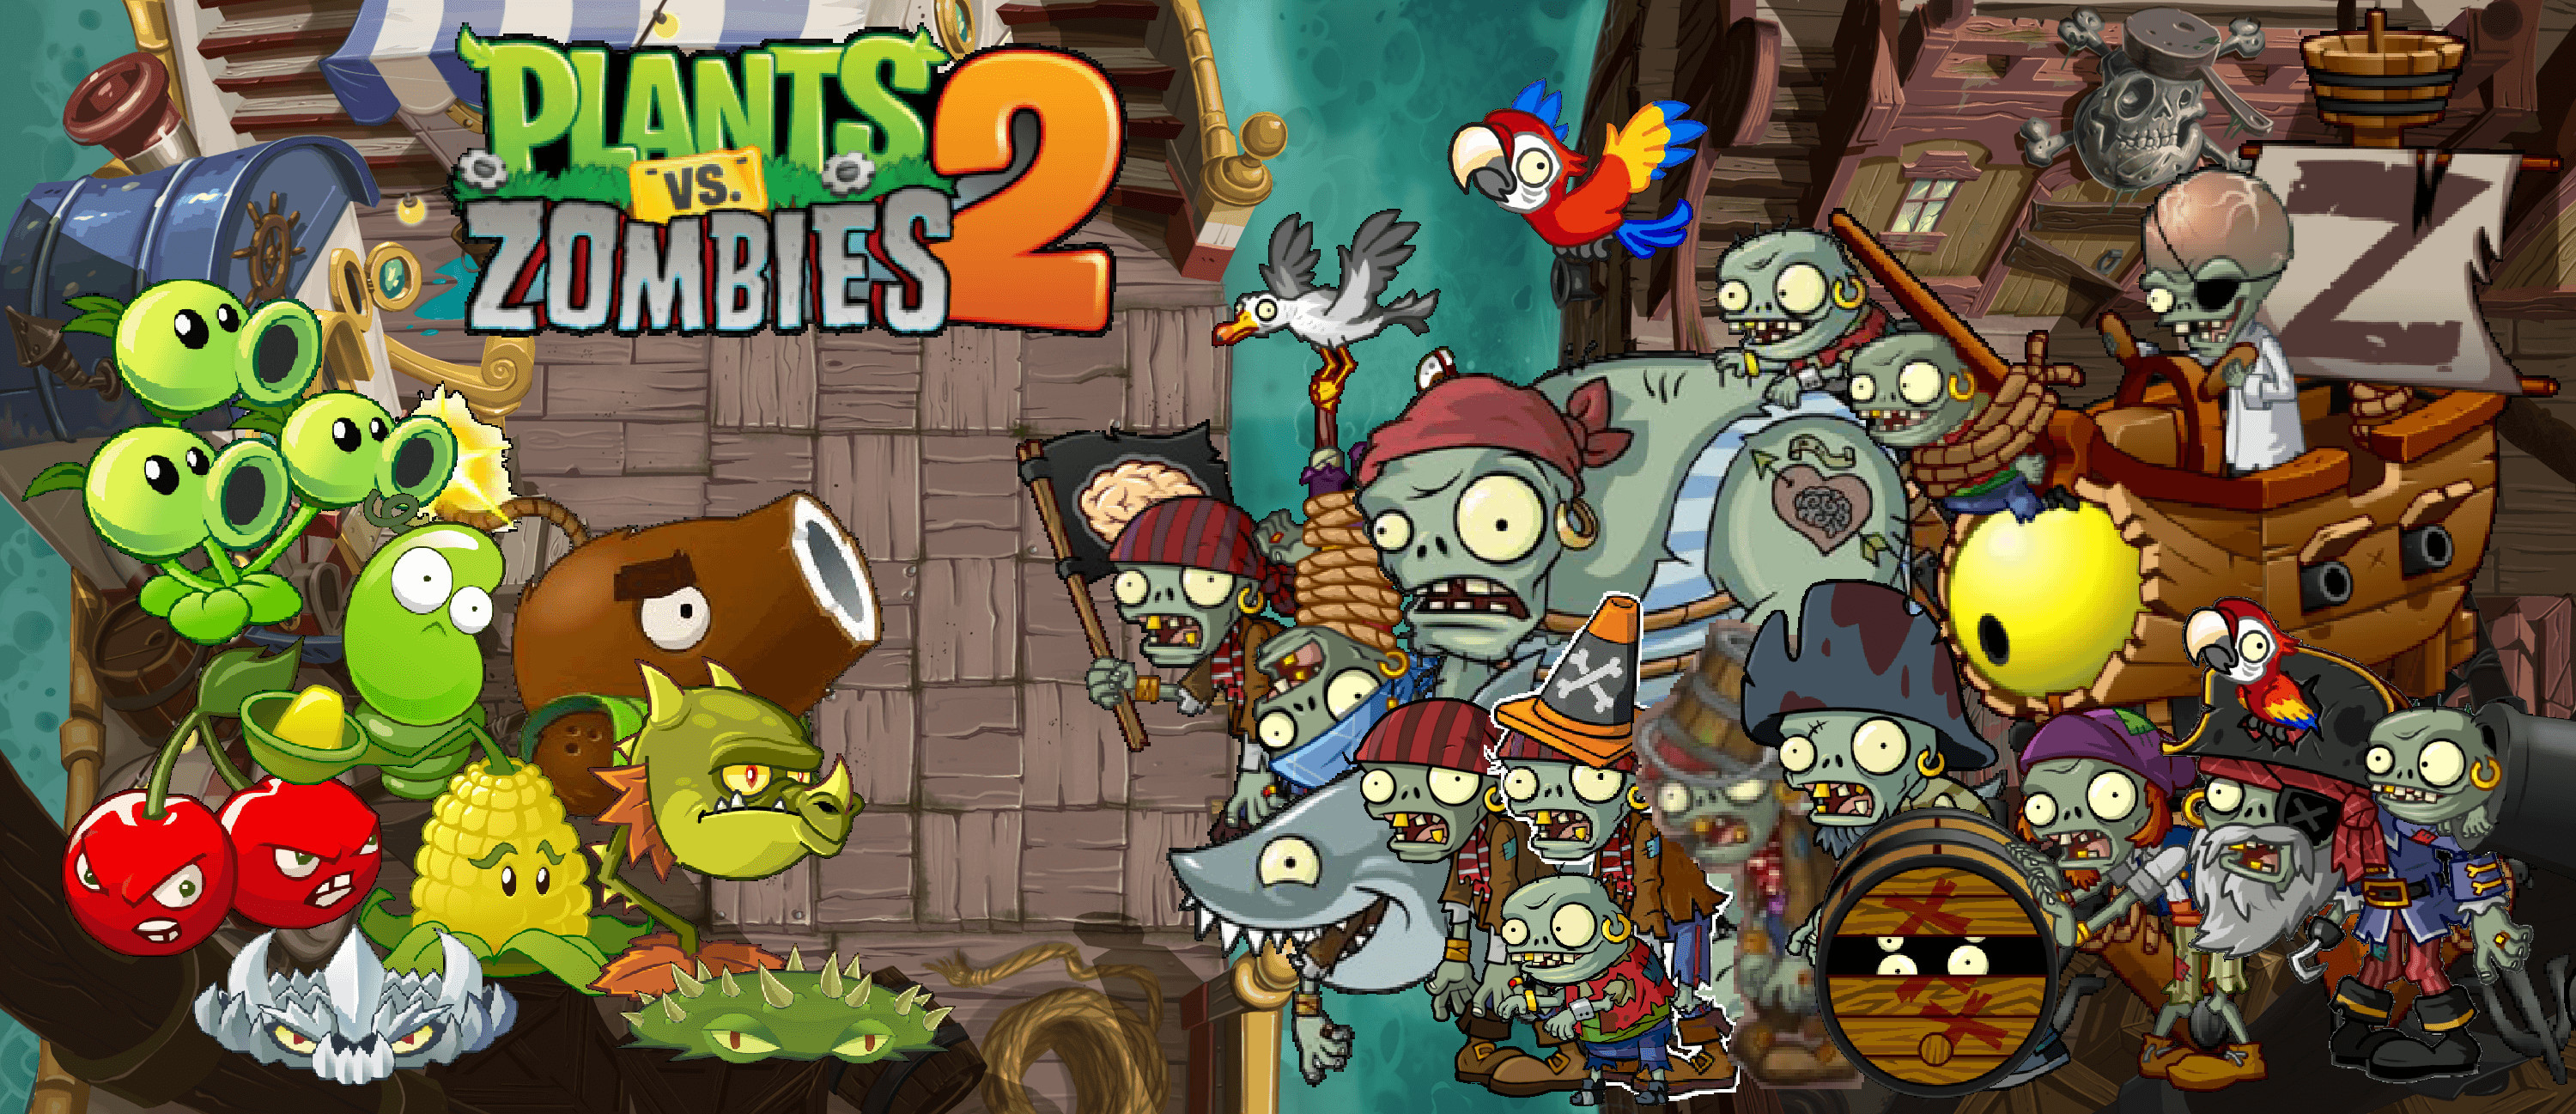 3000x1297 Plants Vs Zombies Bedroom Wallpaper Fantastic Plants Vs Zombies Wallpapers  Wallpaper Cave